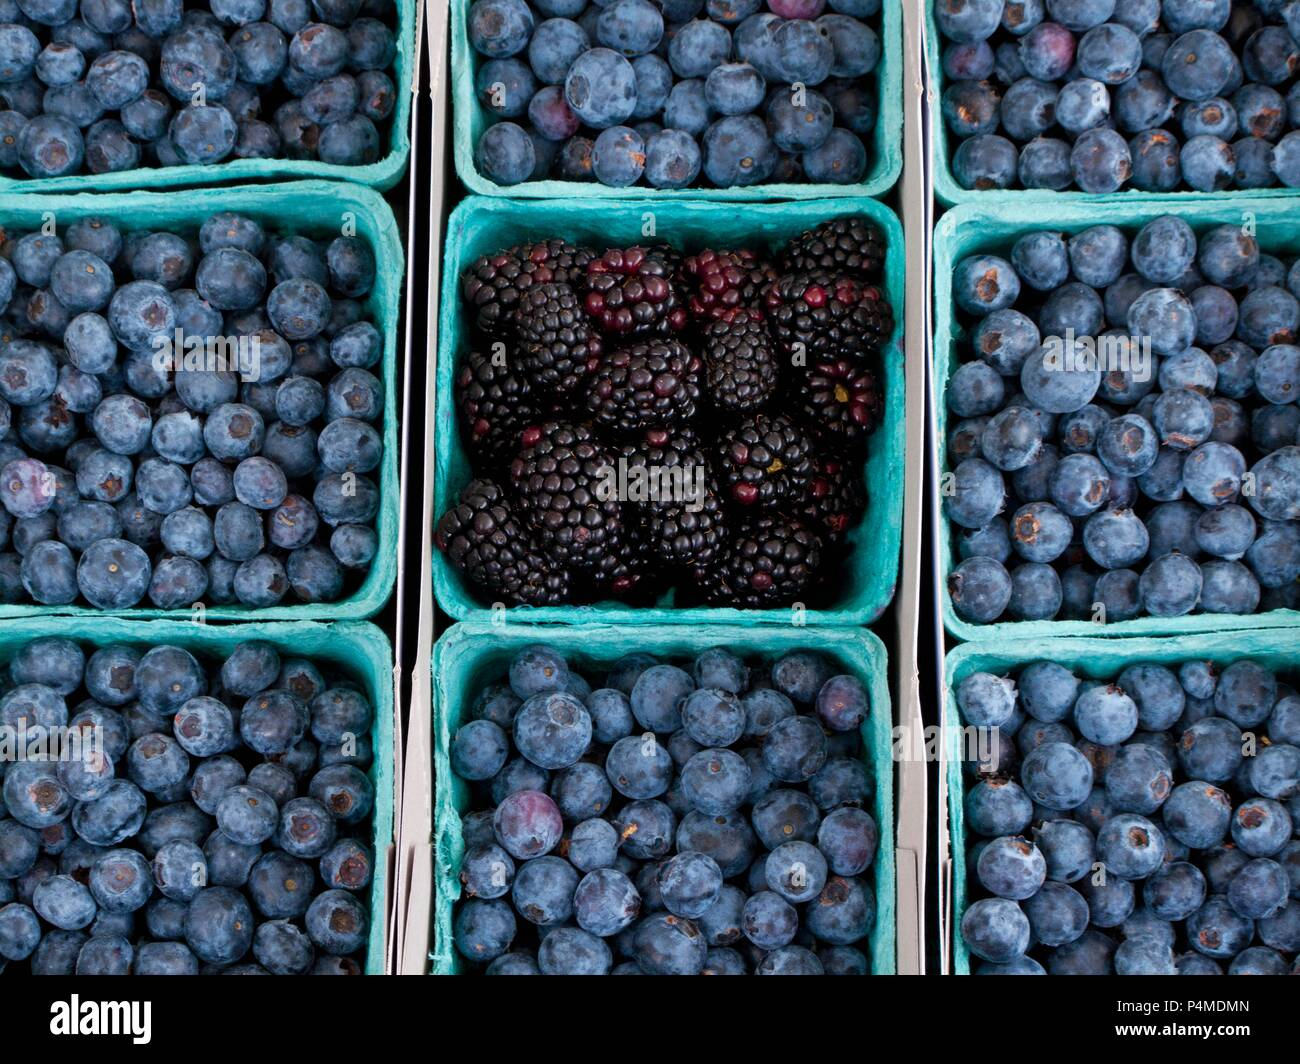 Blueberries and blackberries at a farmers market - Stock Image